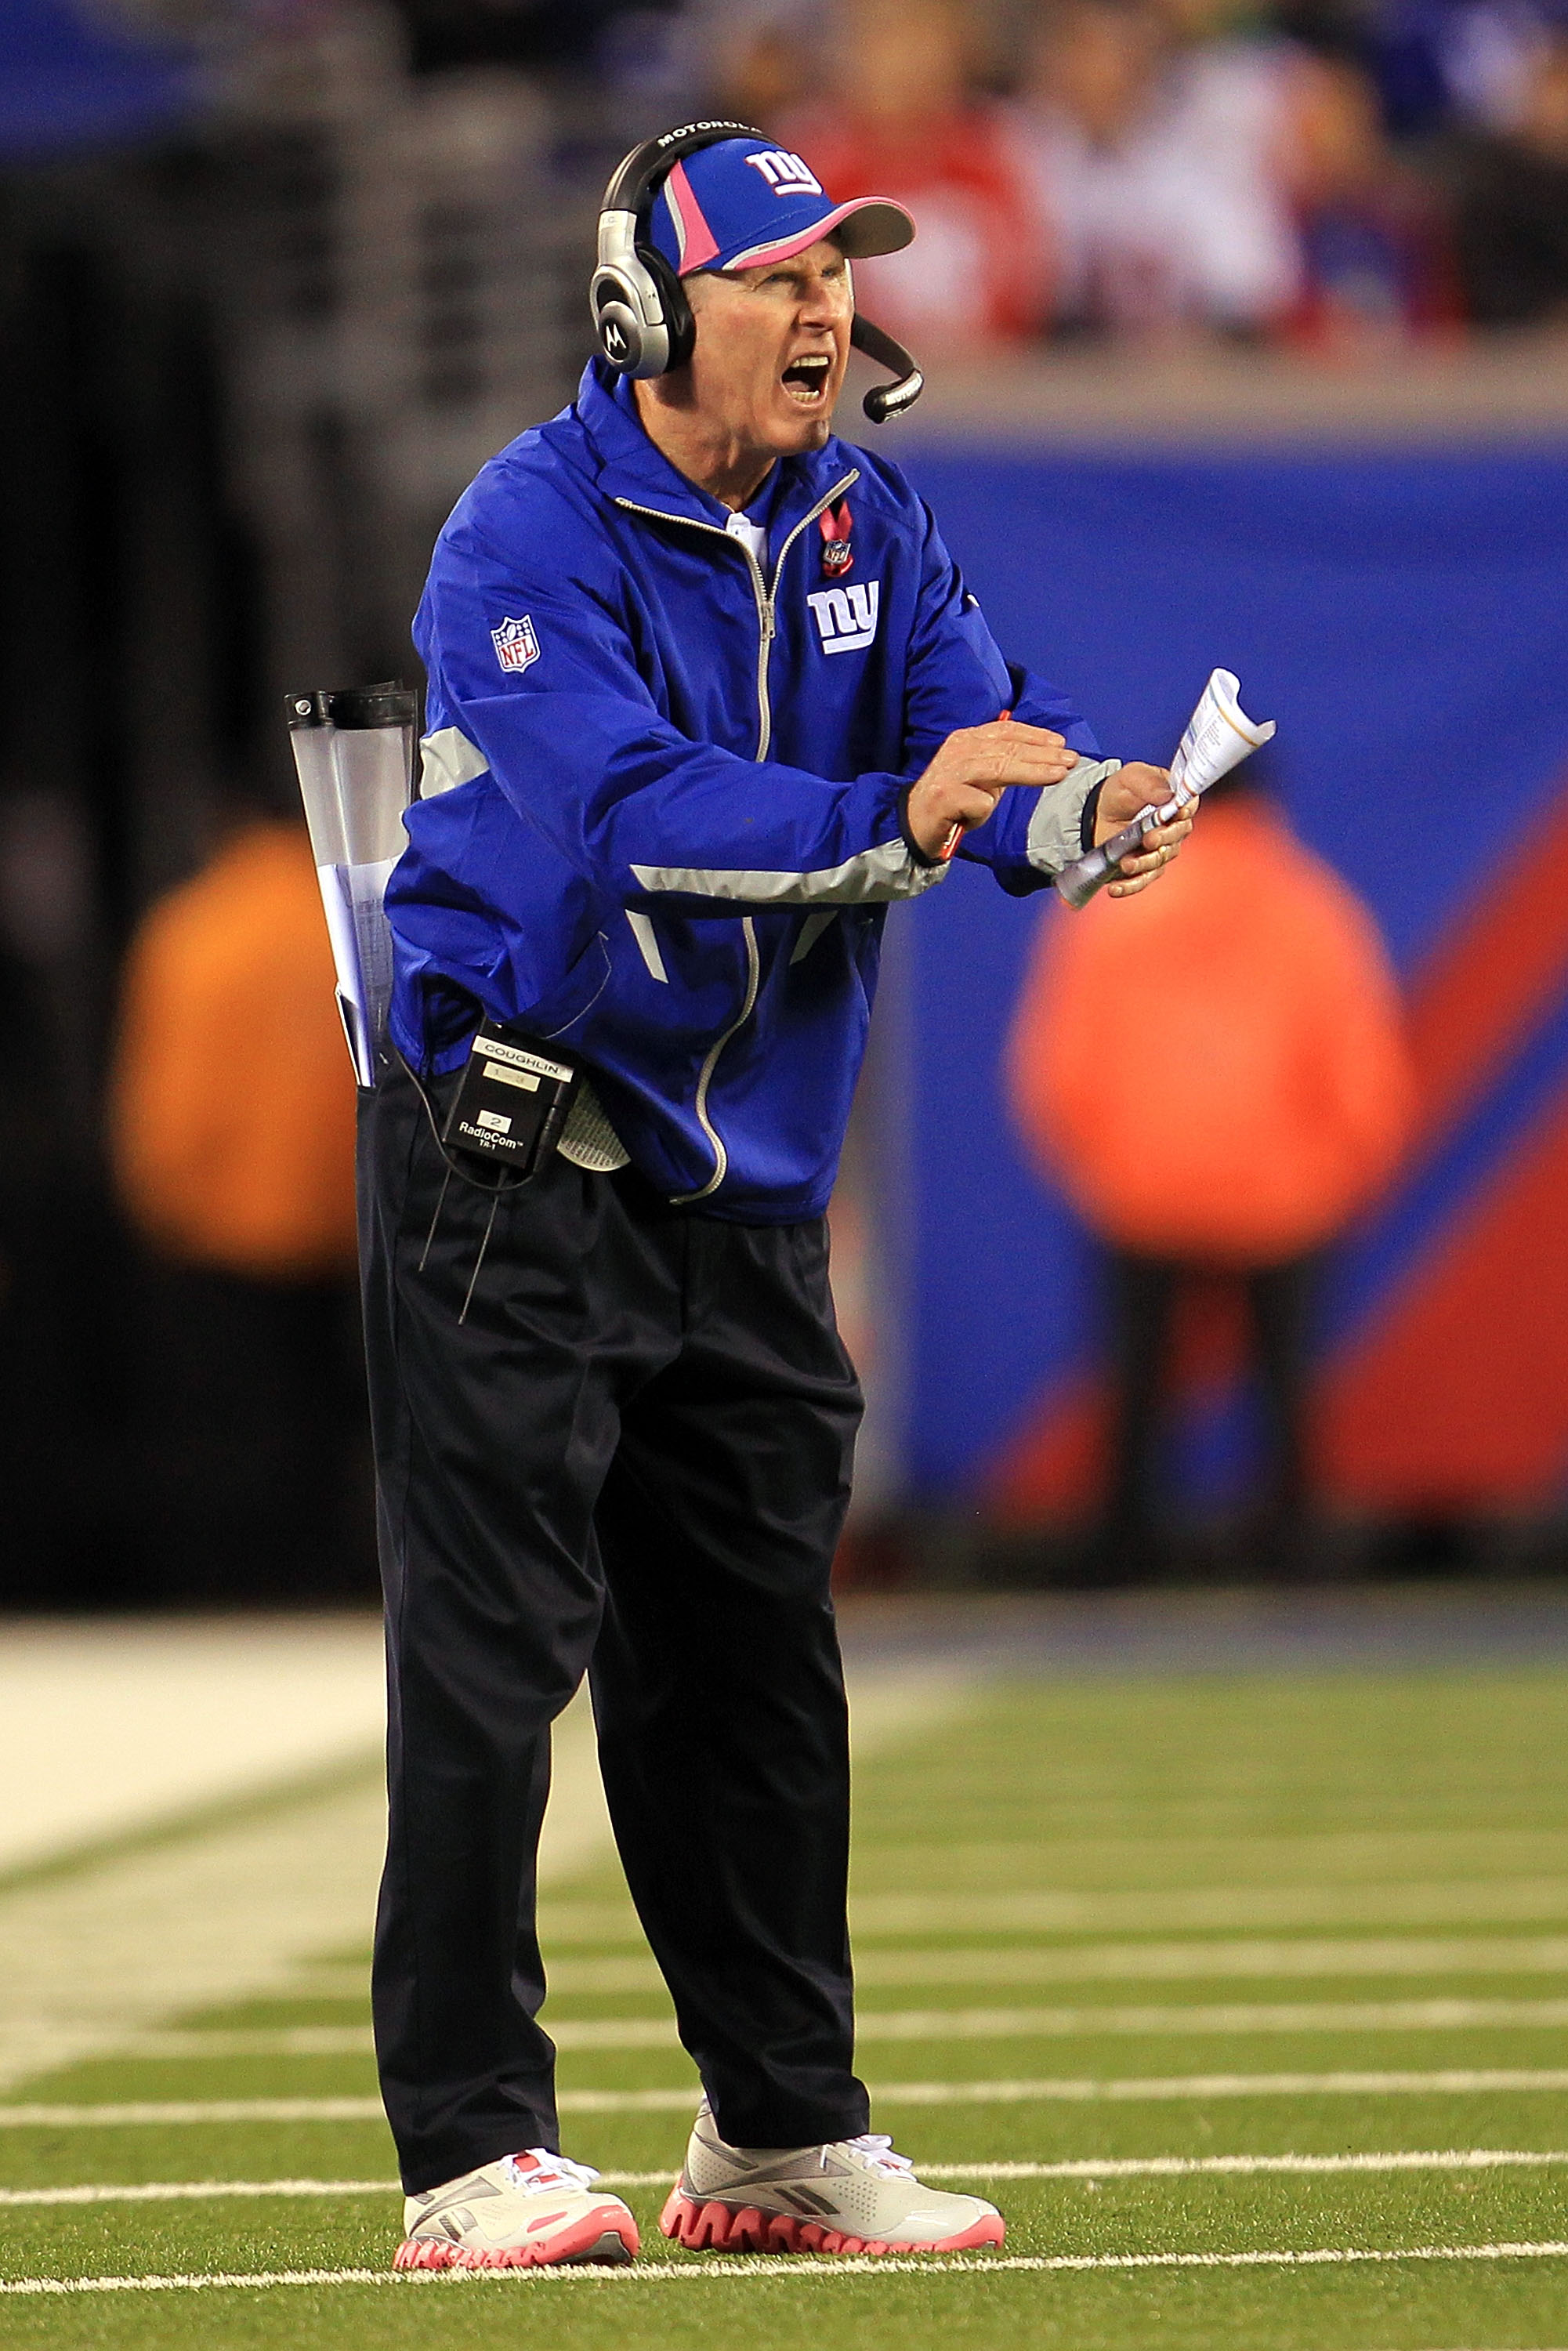 EAST RUTHERFORD, NJ - OCTOBER 03:  Head coach Tom Coughlin of the New York Giants shouts from the sidelines against the Chicago Bears at New Meadowlands Stadium on October 3, 2010 in East Rutherford, New Jersey.  (Photo by Chris McGrath/Getty Images)